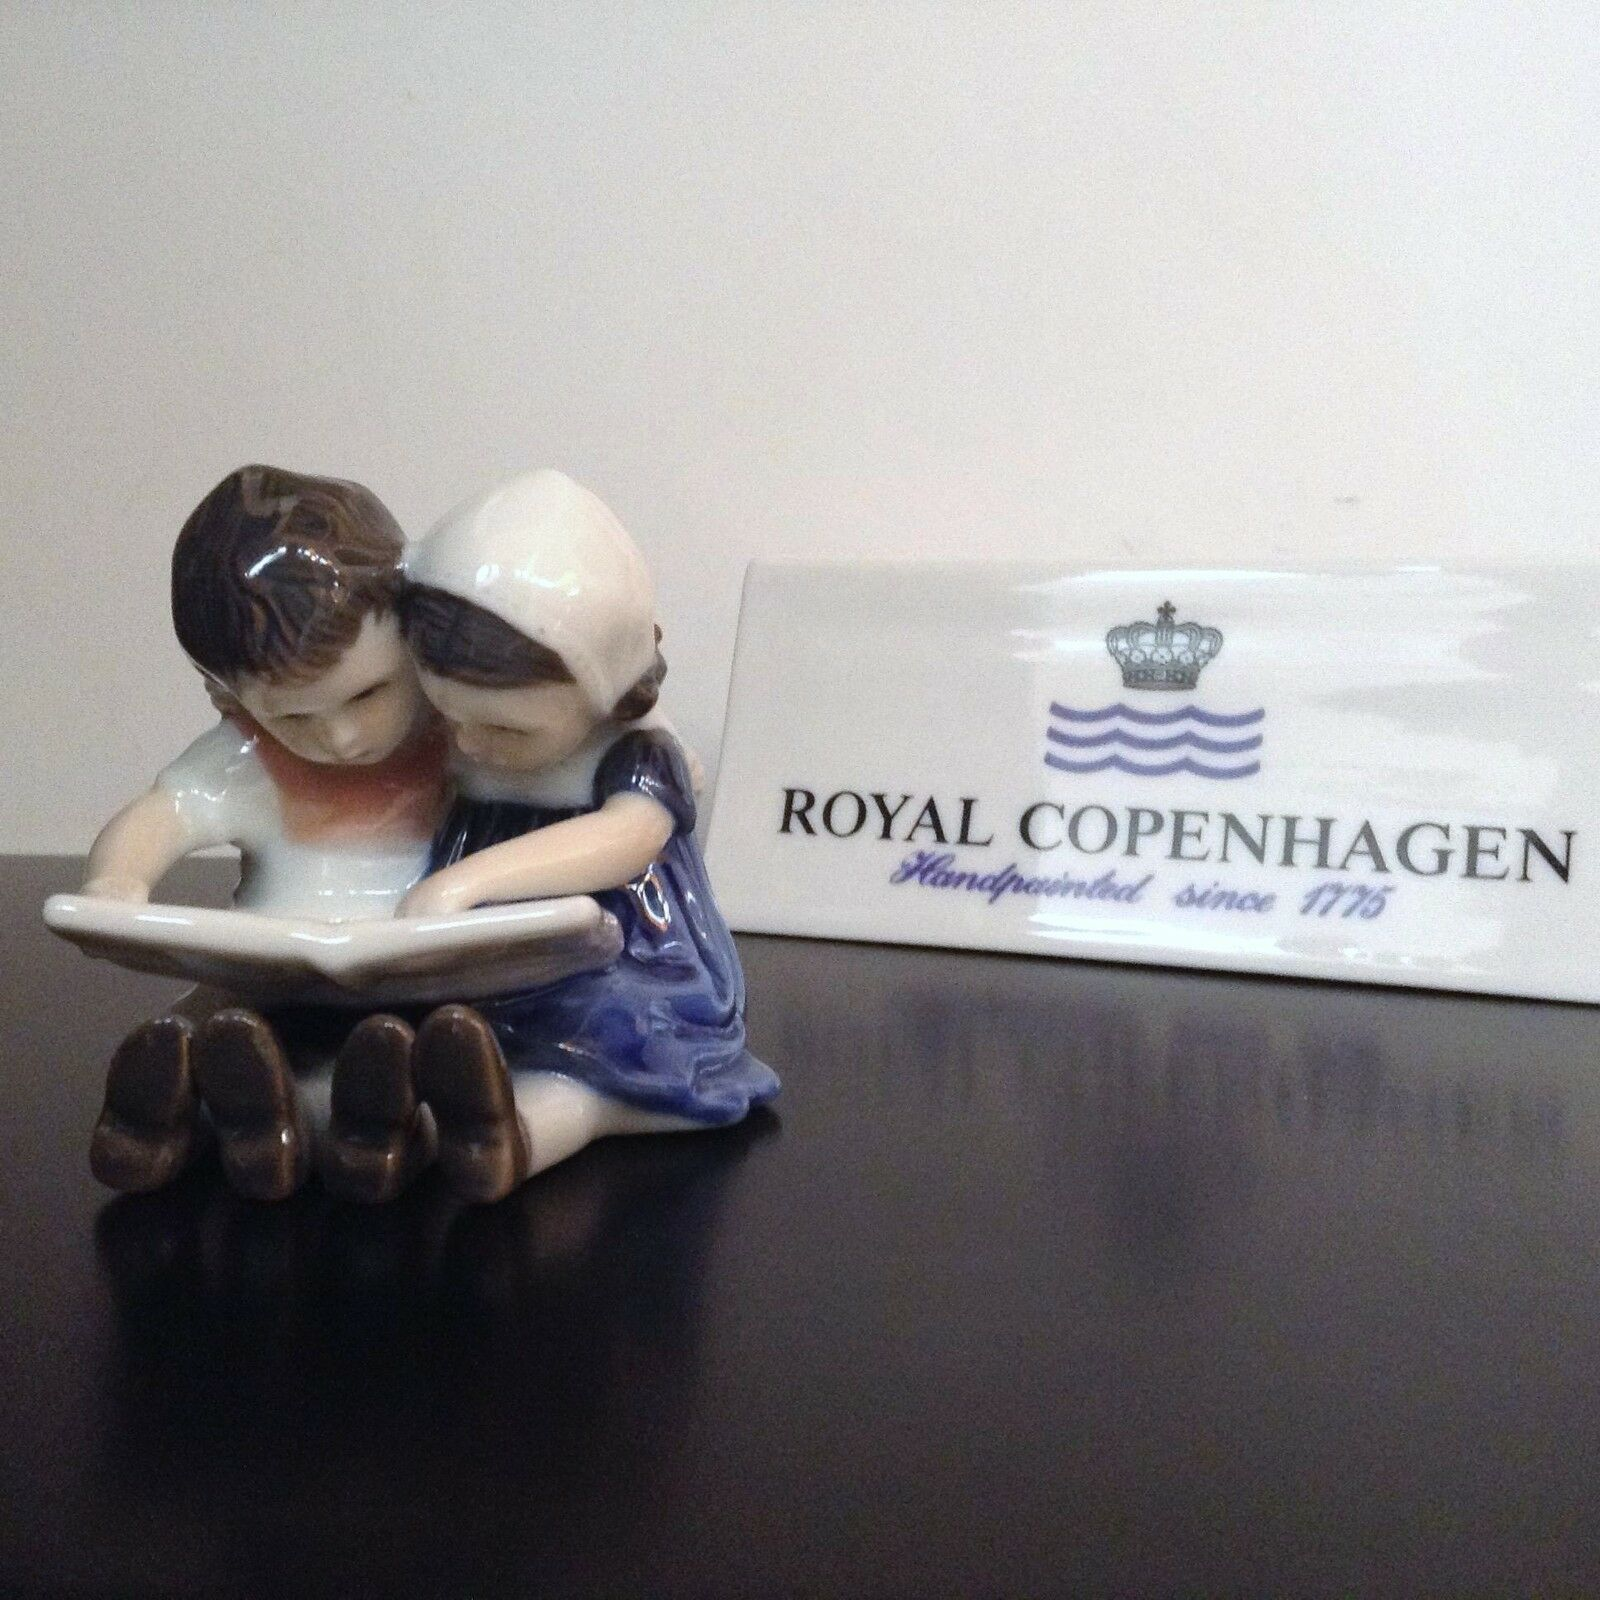 Royal Copenhagen Figurine - Kids that Read Mini - Royal Copenhagen Figurine